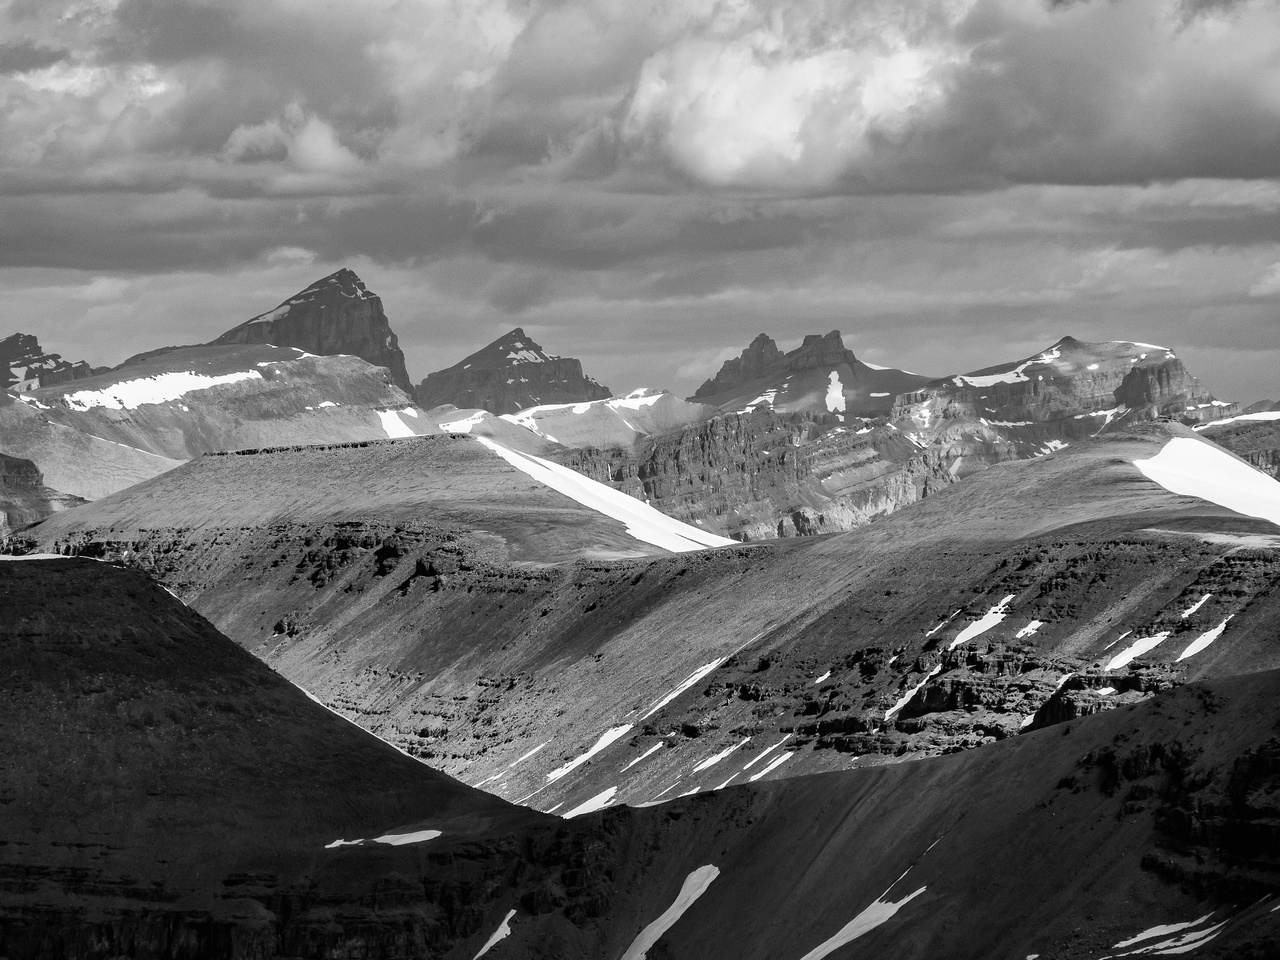 Mount Cline (L) with Resolute to the right.